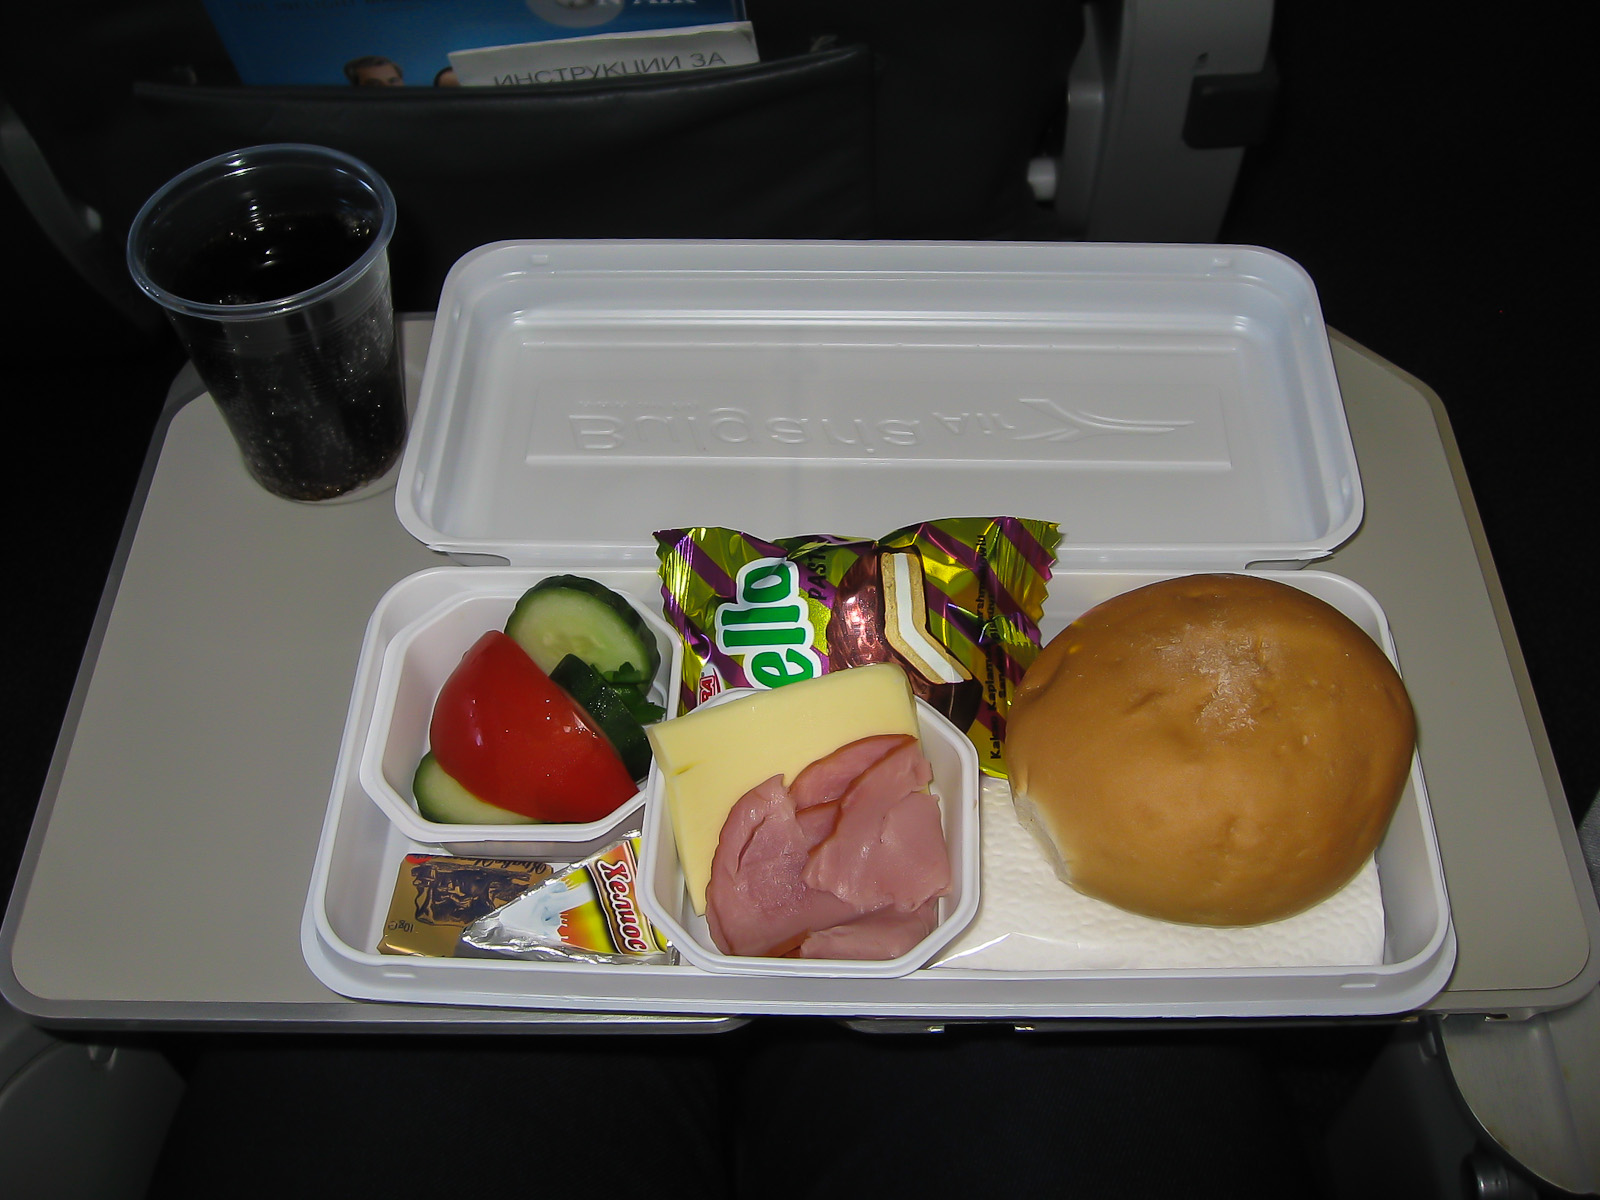 Meal on the Burgas-Moscow flight of Bulgaria Air